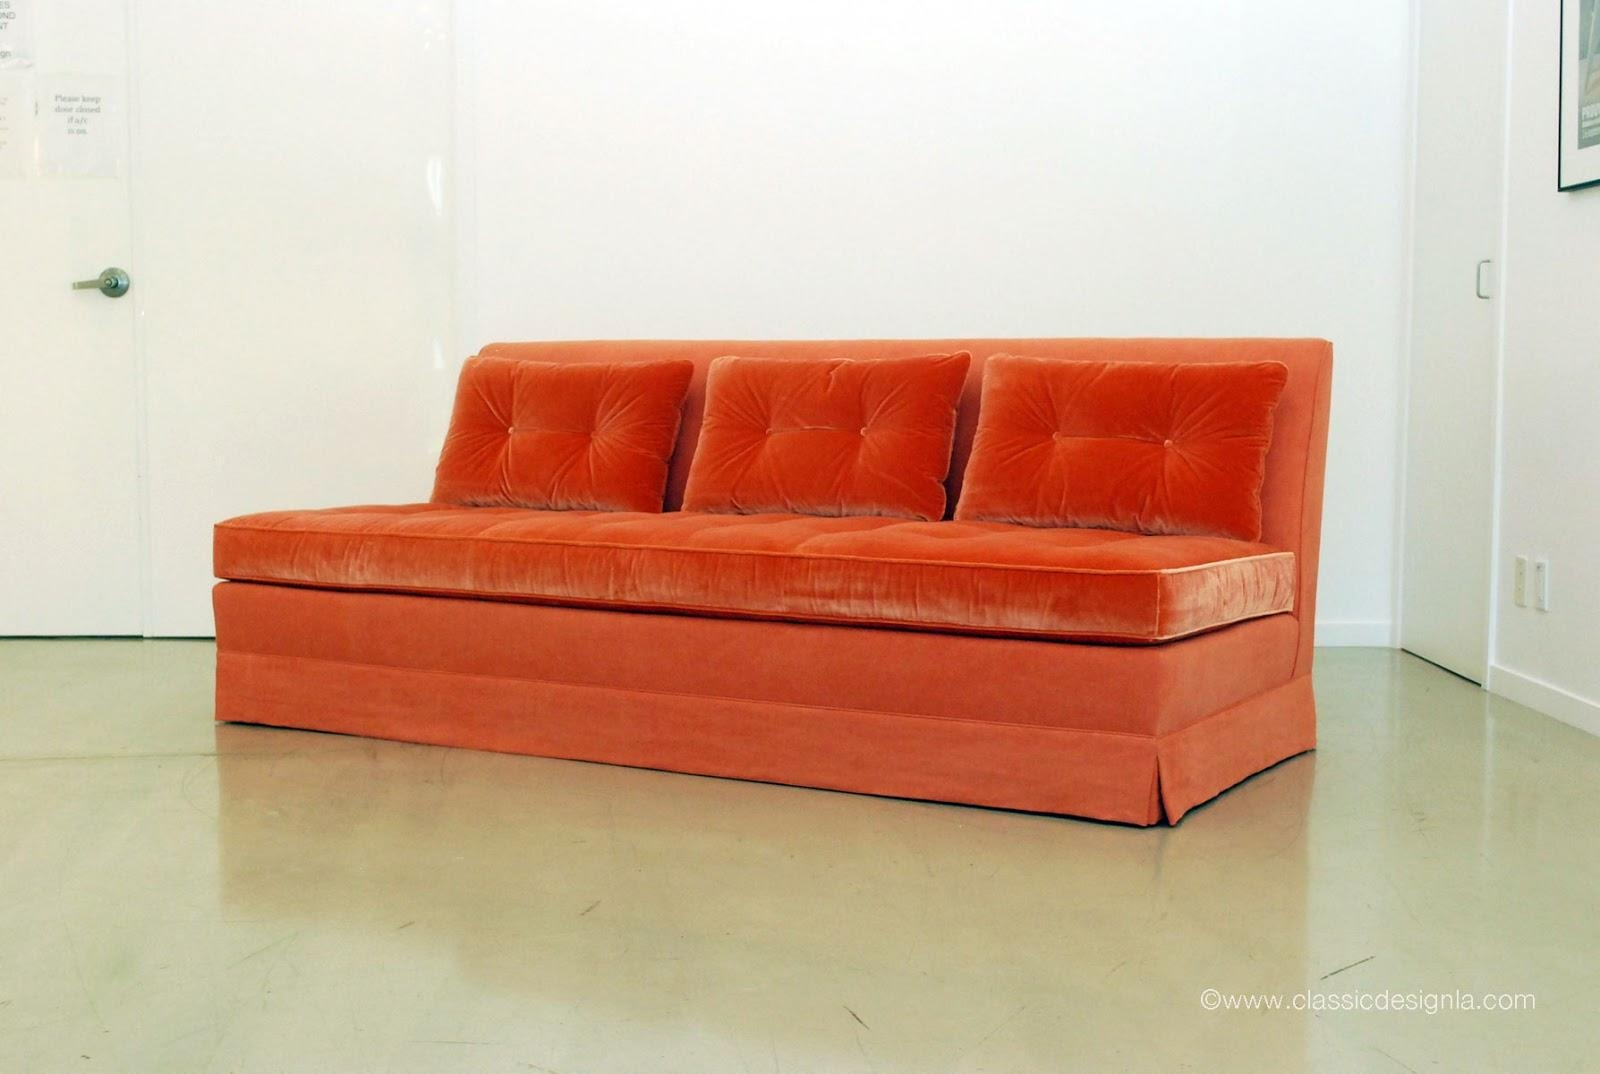 Sofa Banquette Images – Banquette Design With Banquette Sofas (Image 20 of 20)